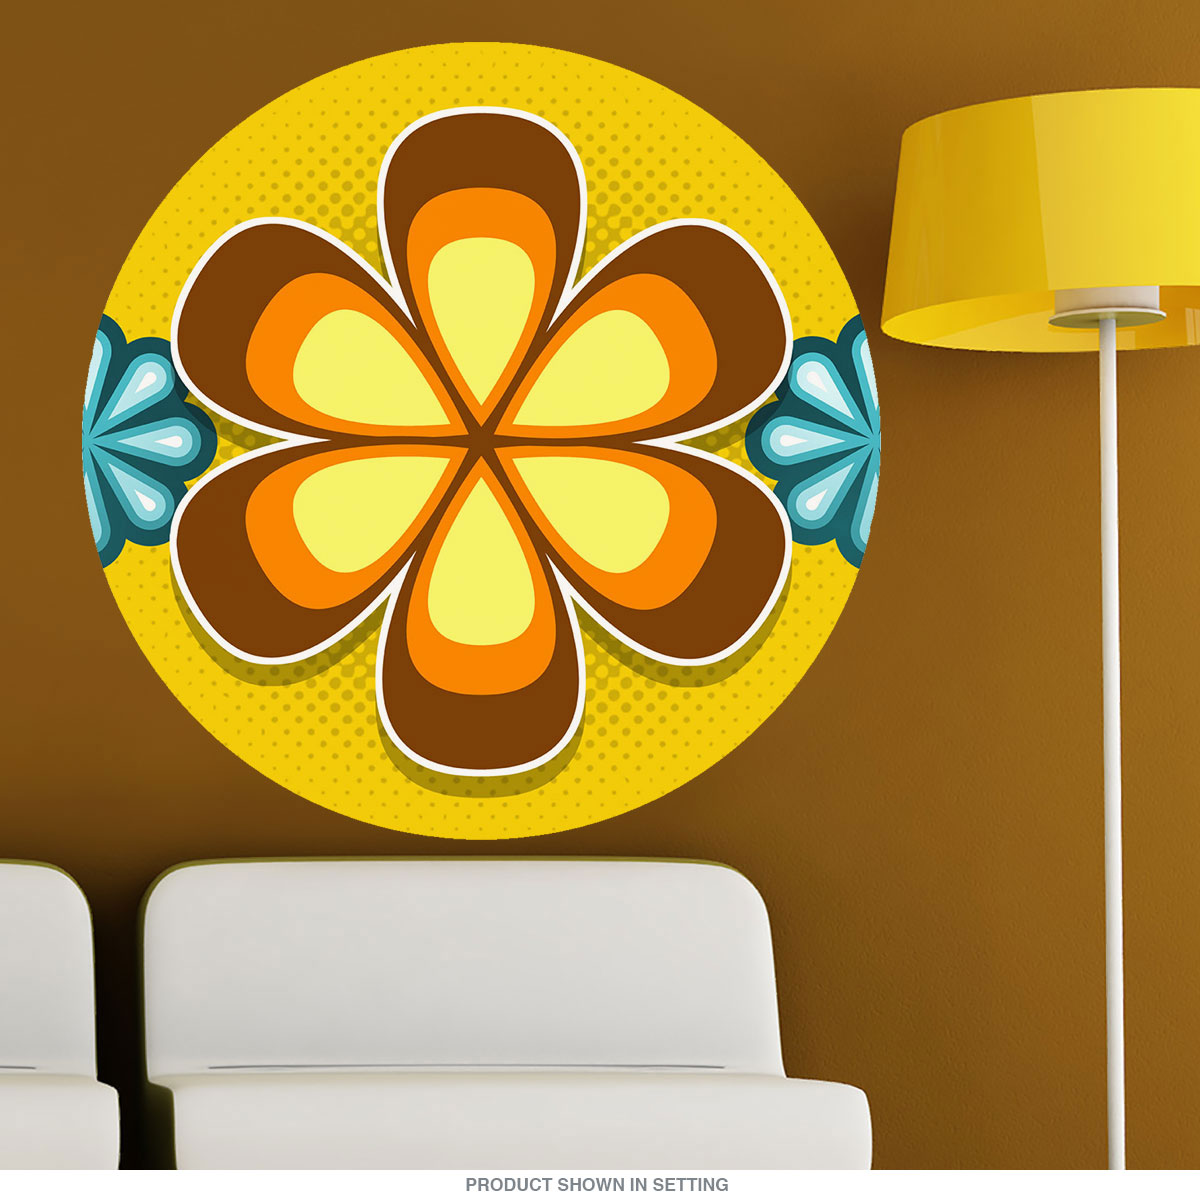 Mod Flower 70s Style Wall Decal Brown | Removable Wall Sticker ...